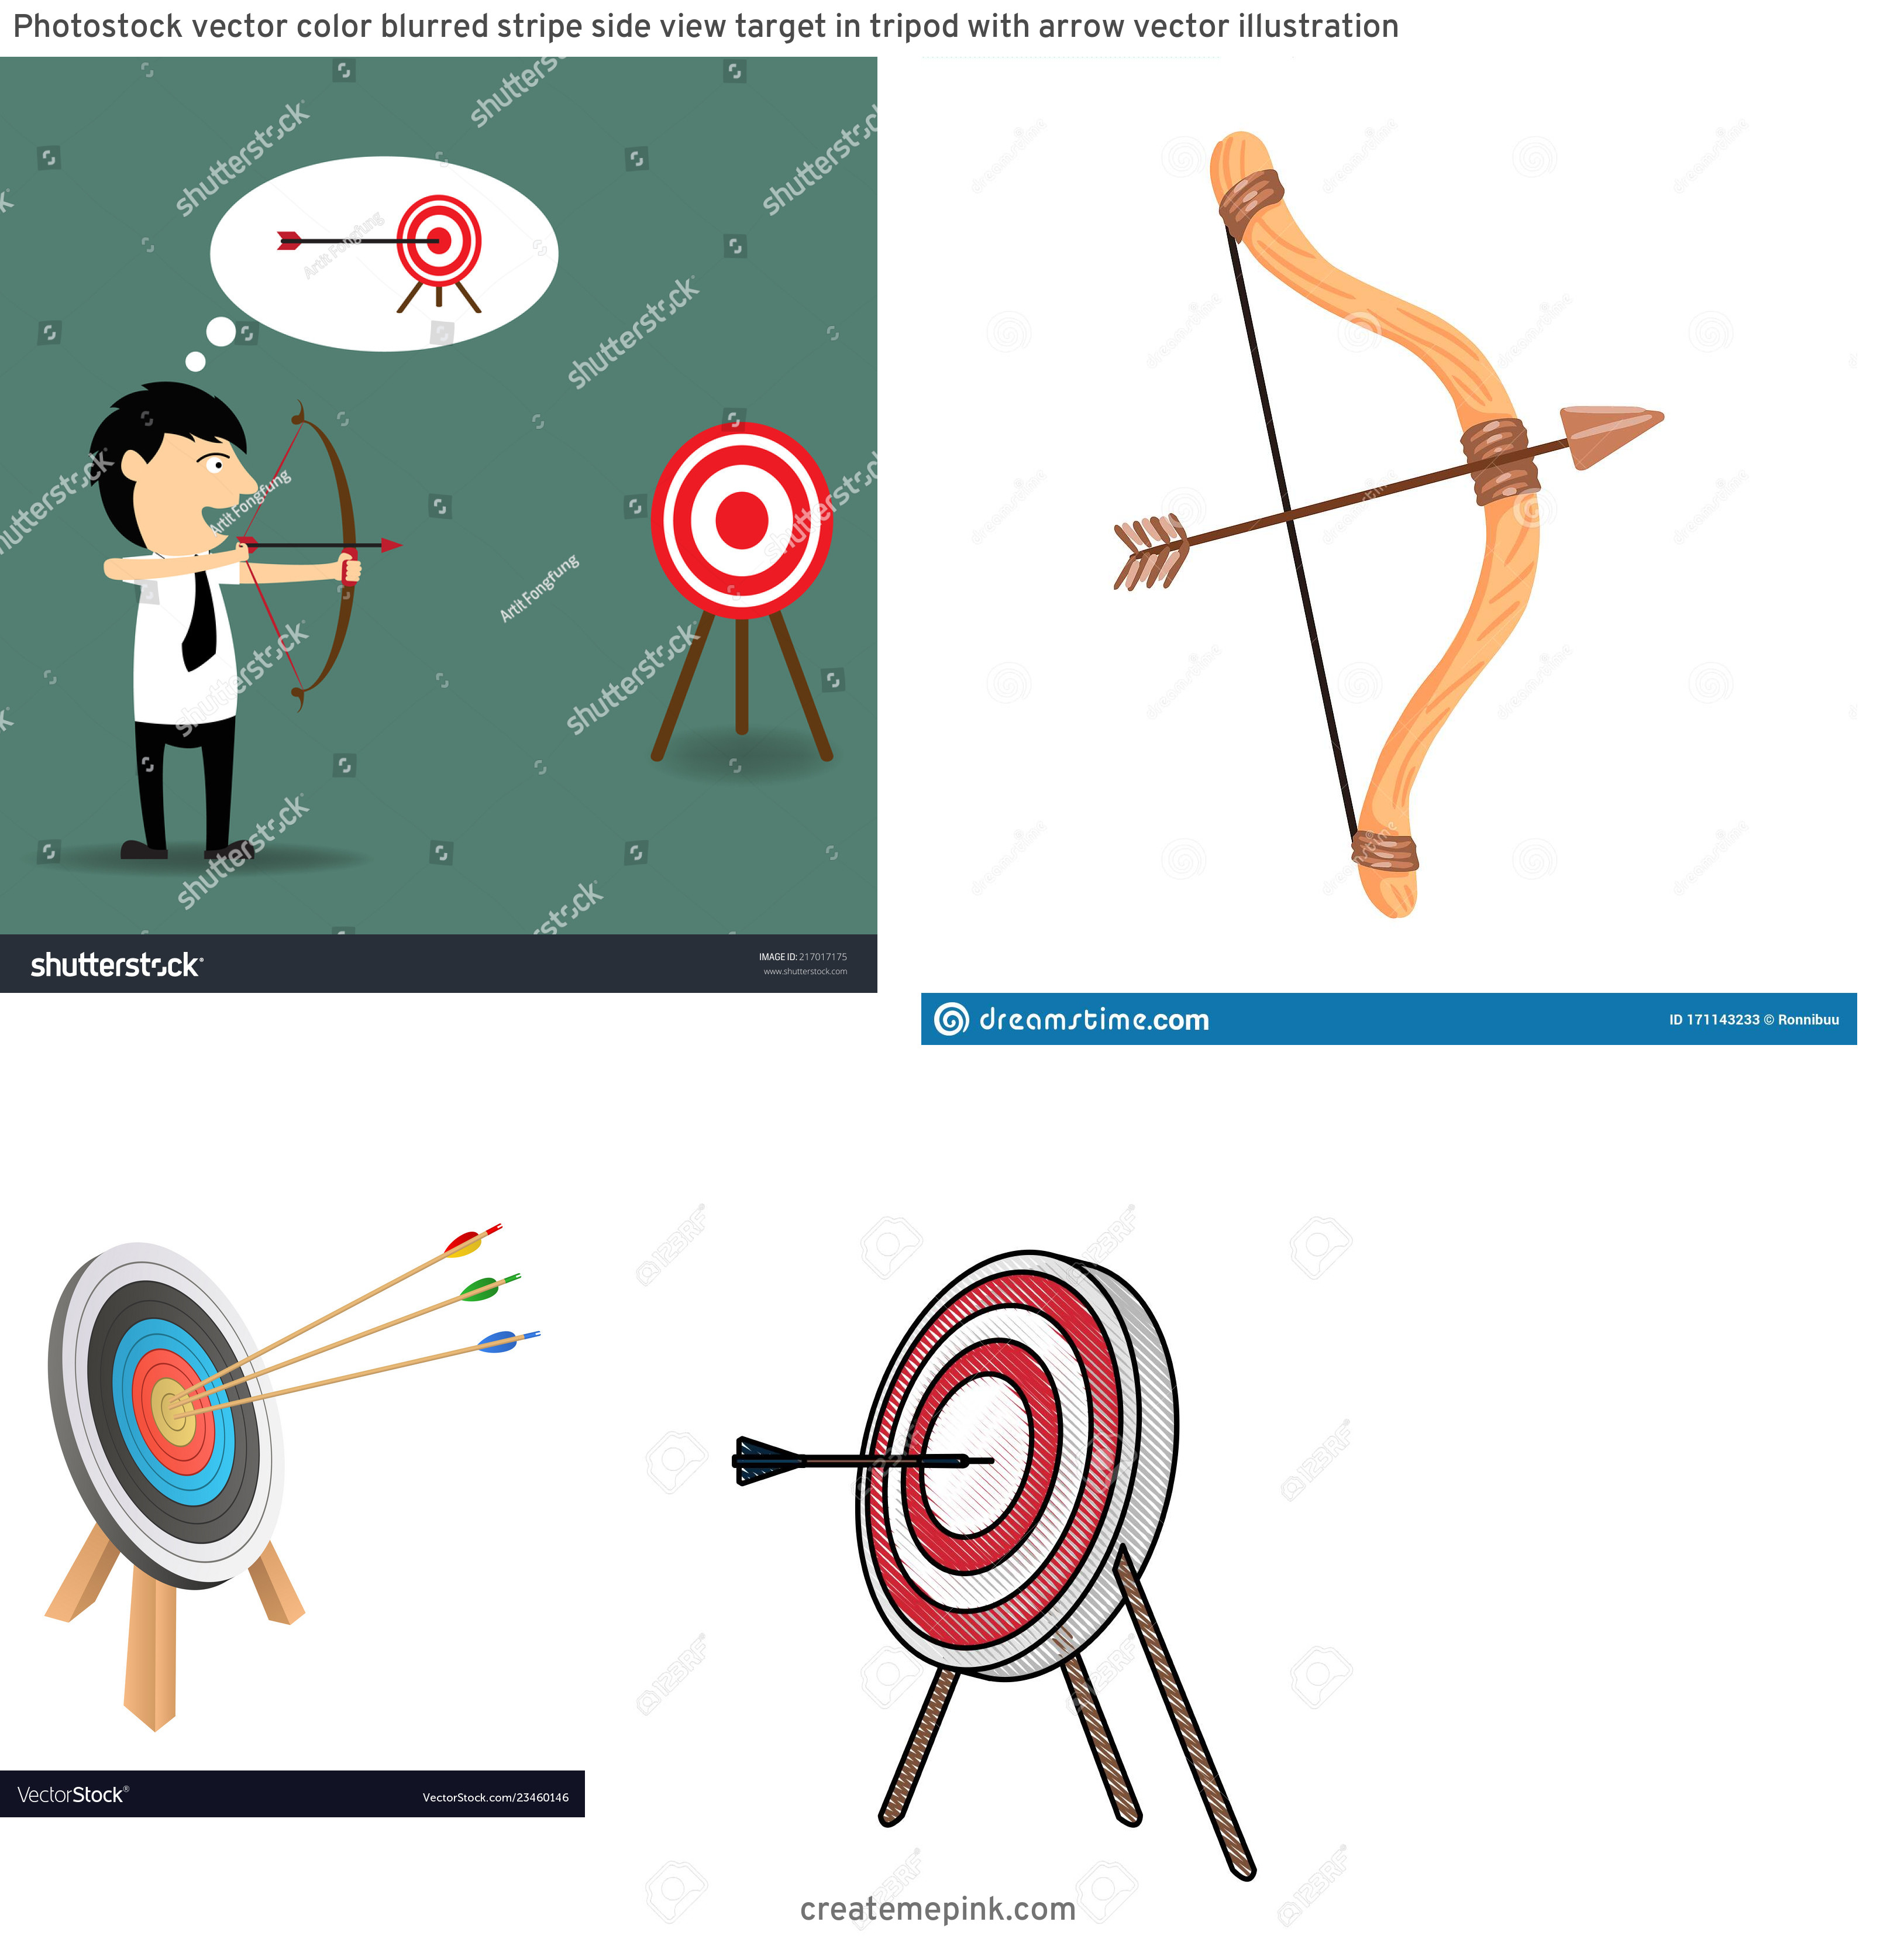 Target Bow And Arrow Vector: Photostock Vector Color Blurred Stripe Side View Target In Tripod With Arrow Vector Illustration